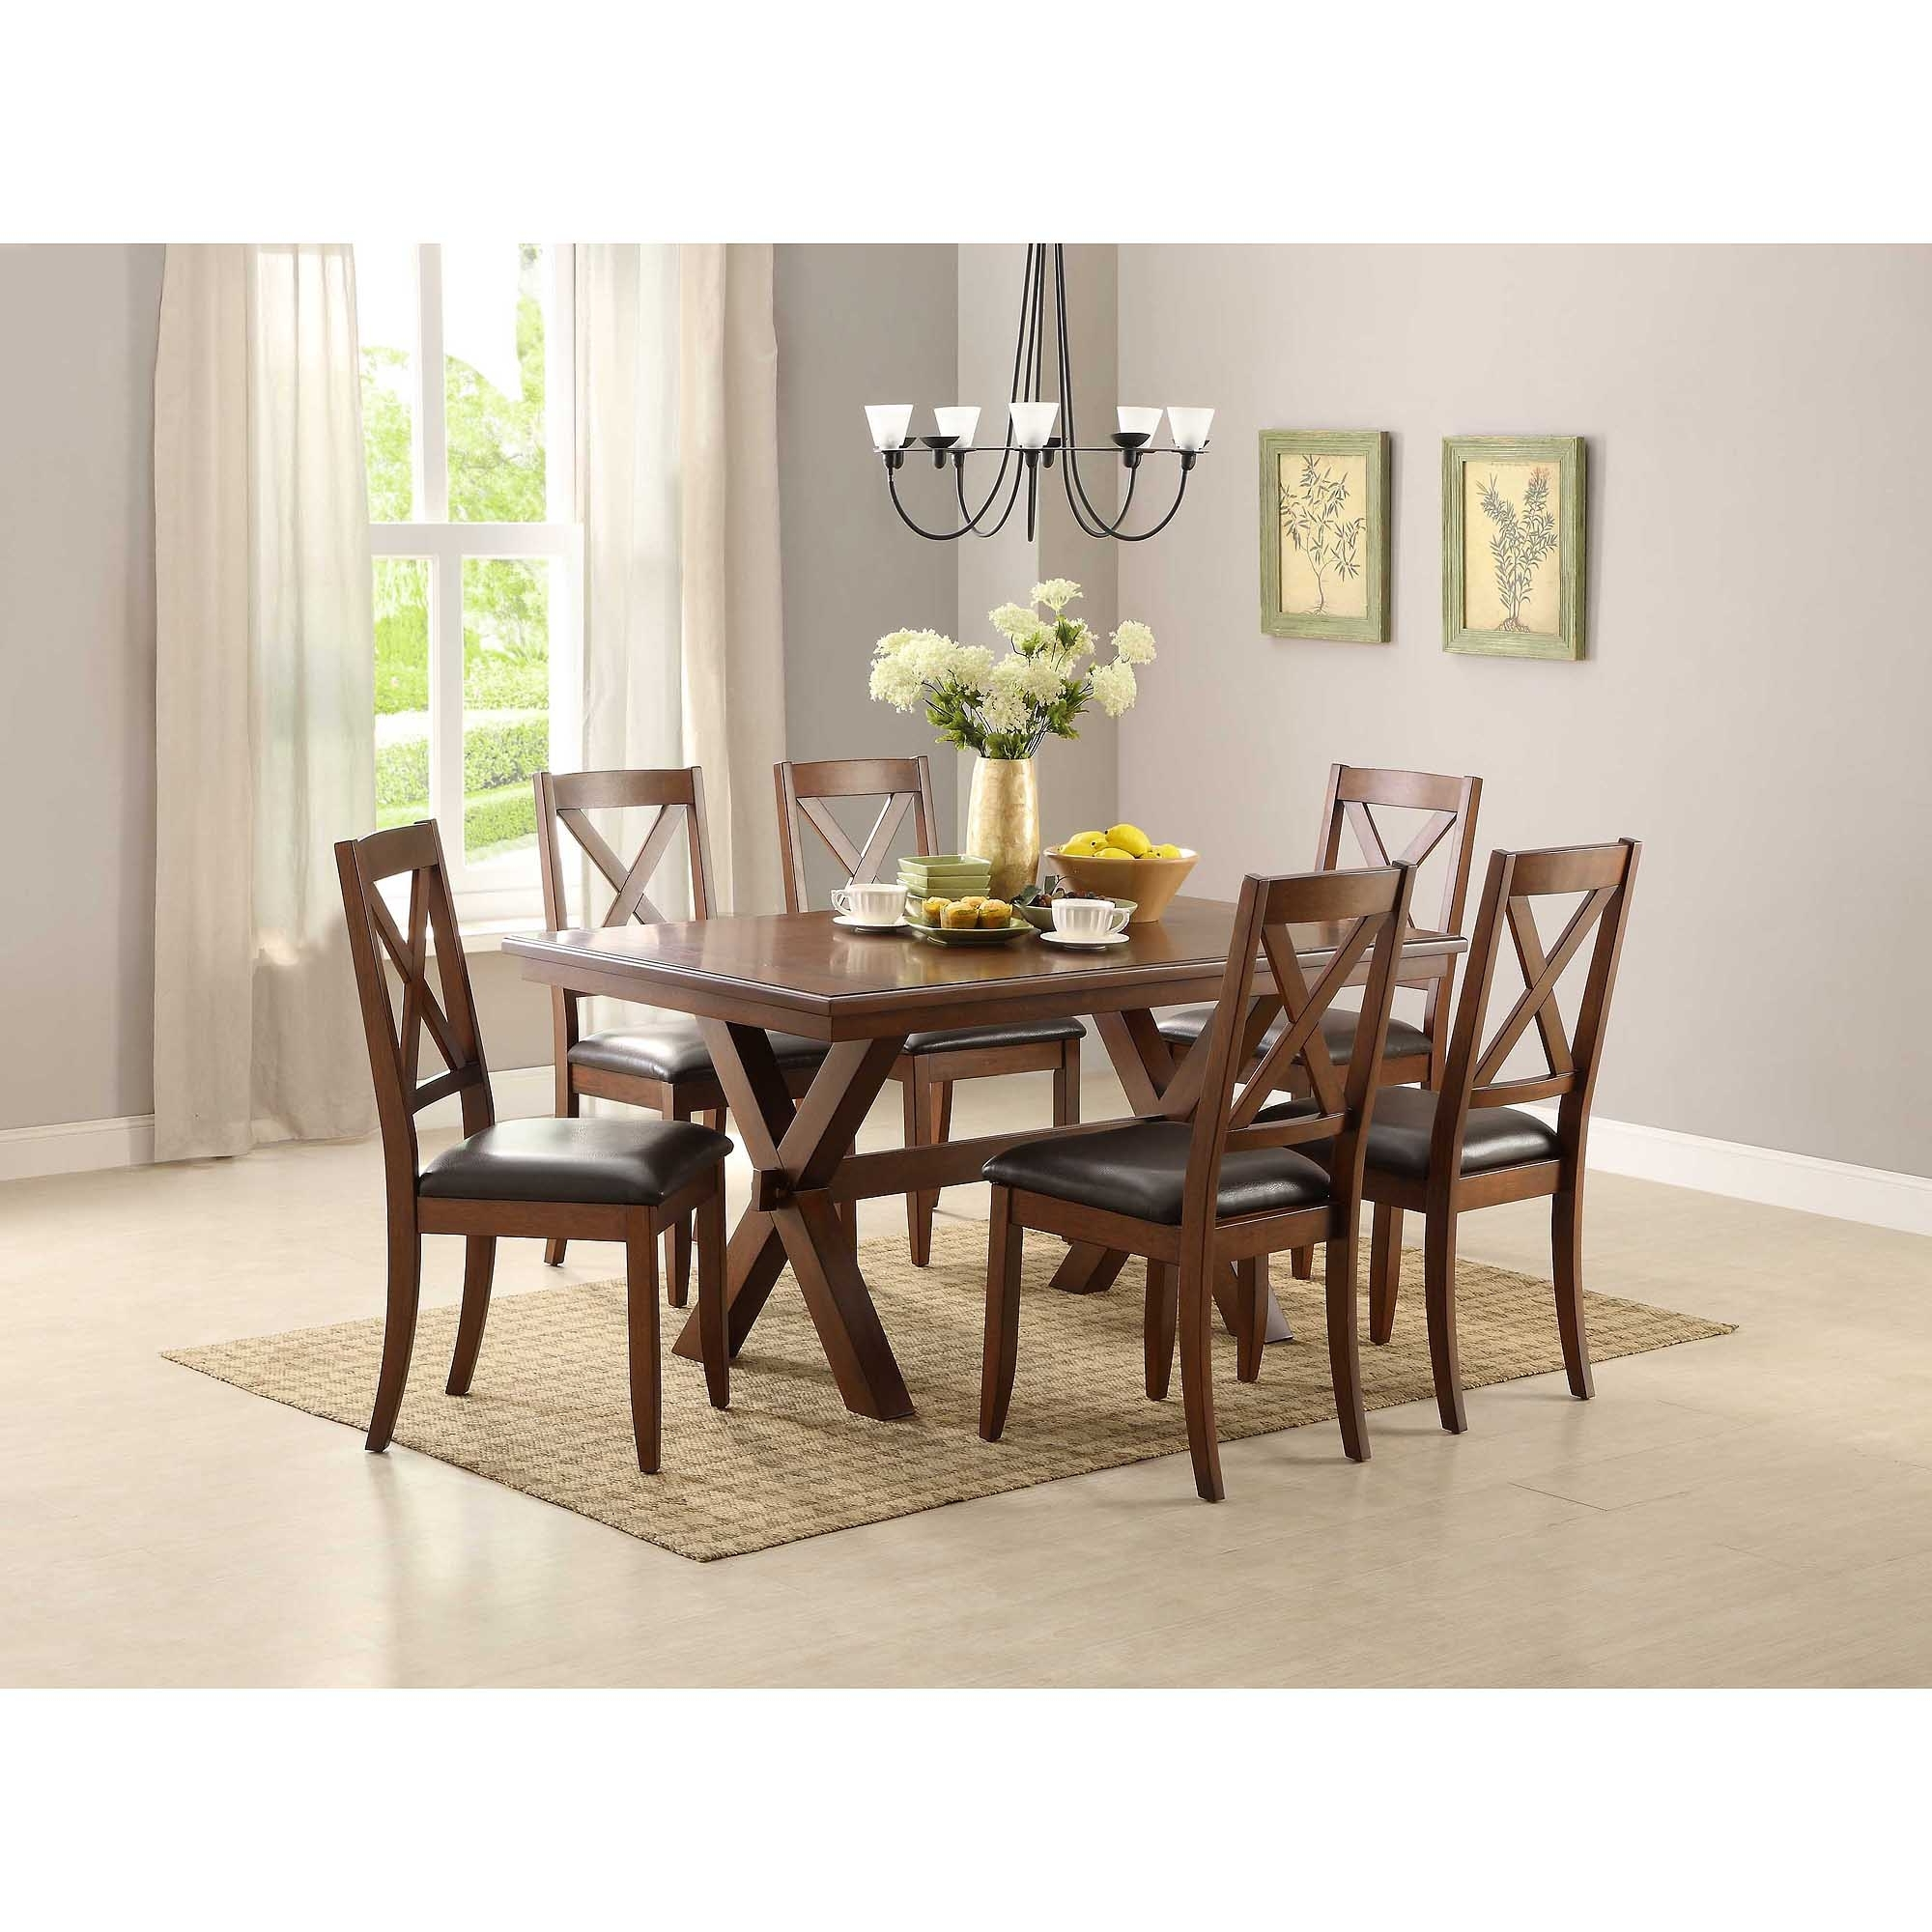 Dining Table Sets For 2 For Most Up To Date Better Homes & Gardens Maddox Crossing Dining Chair, Set Of 2, Brown (View 11 of 25)